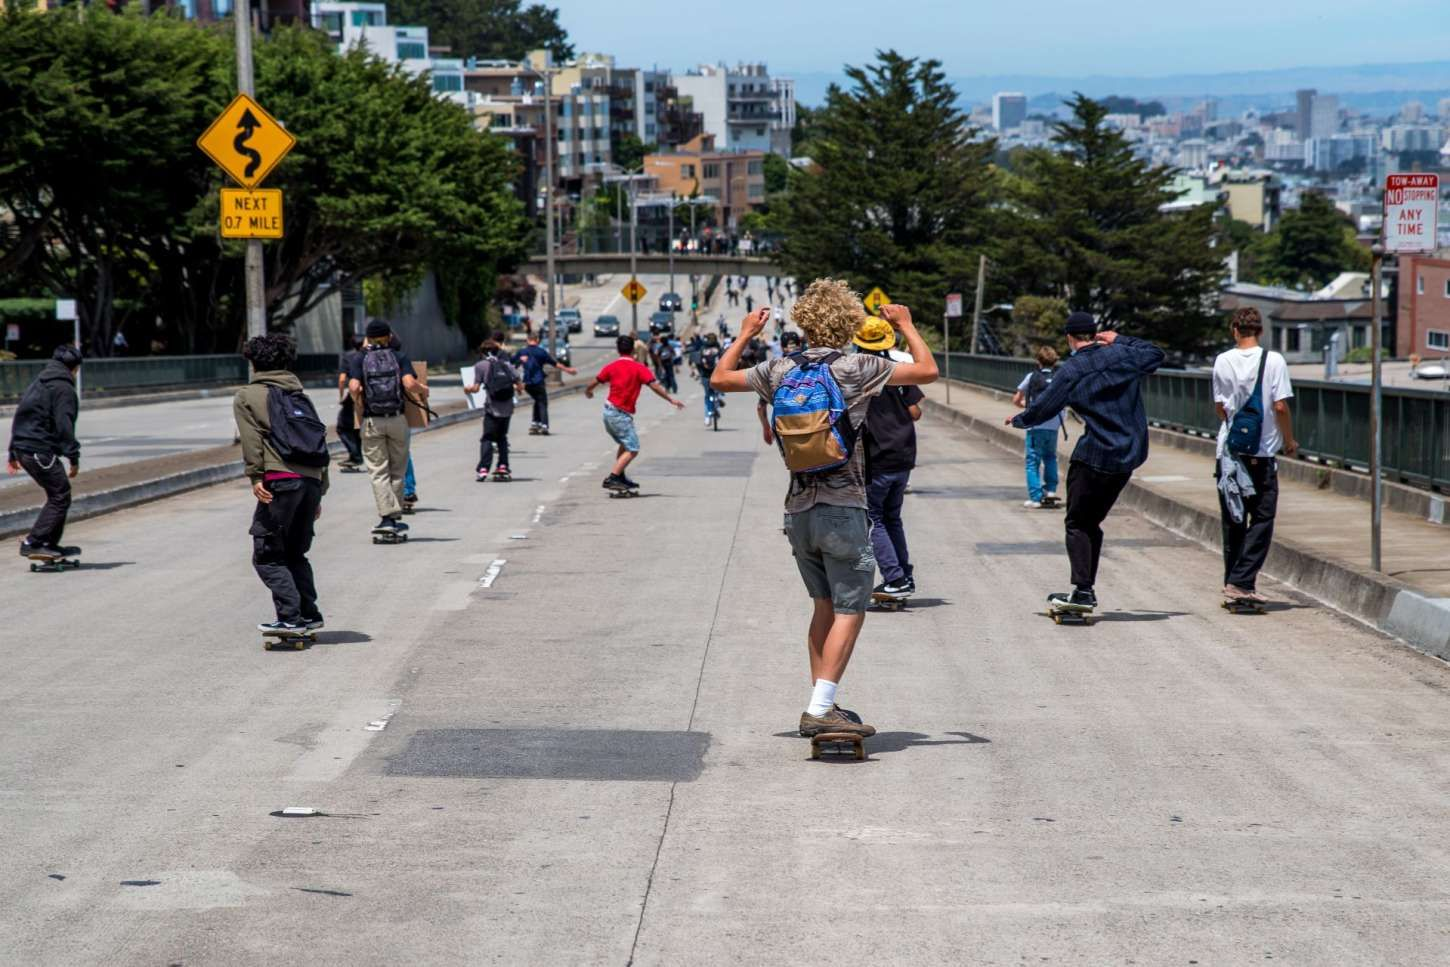 Hundreds Of Skateboarders Hill Bomb Twin Peaks At Black Lives Matter Protest In Sf Black Lives Matter Protest Black Lives Matter Black Lives